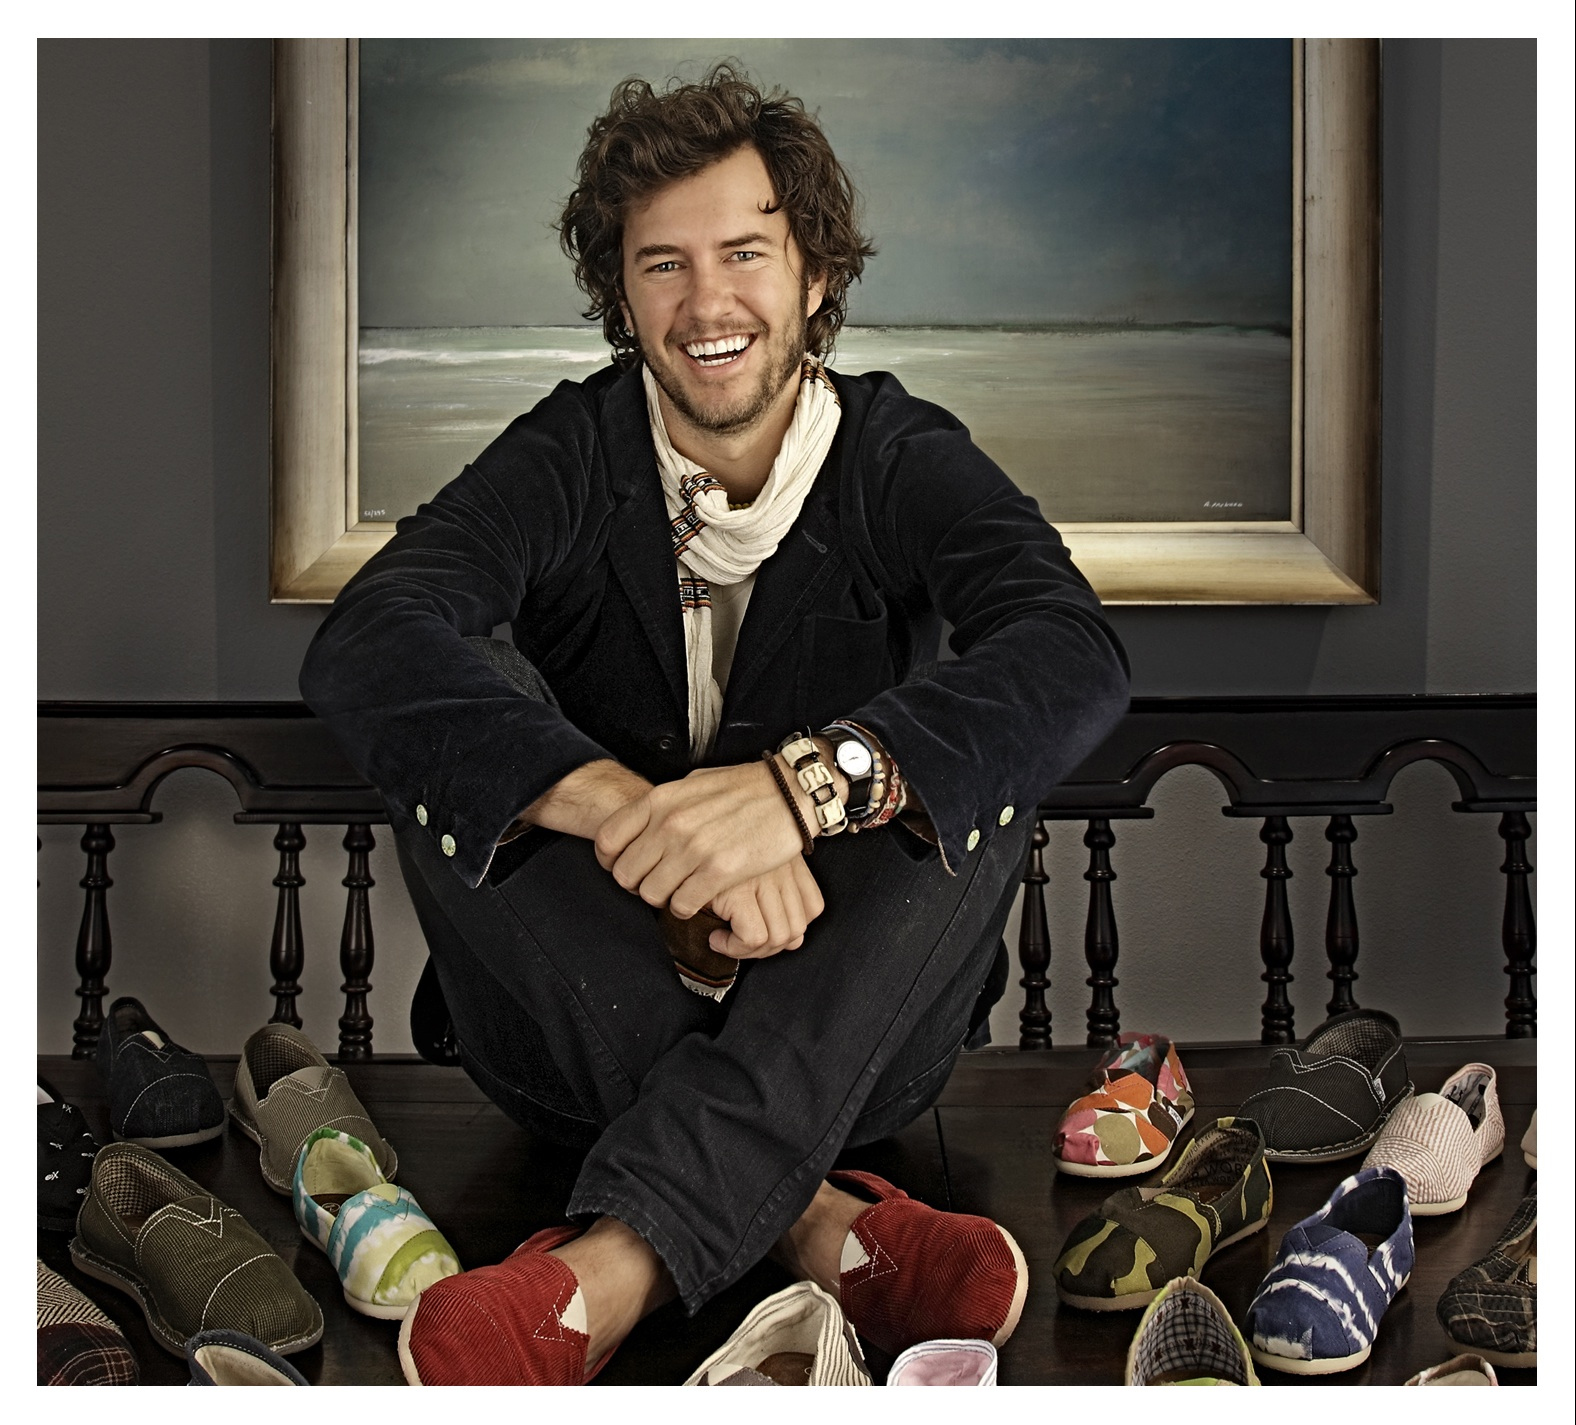 Blake Mycoskie, Consumer Behavior Speaker